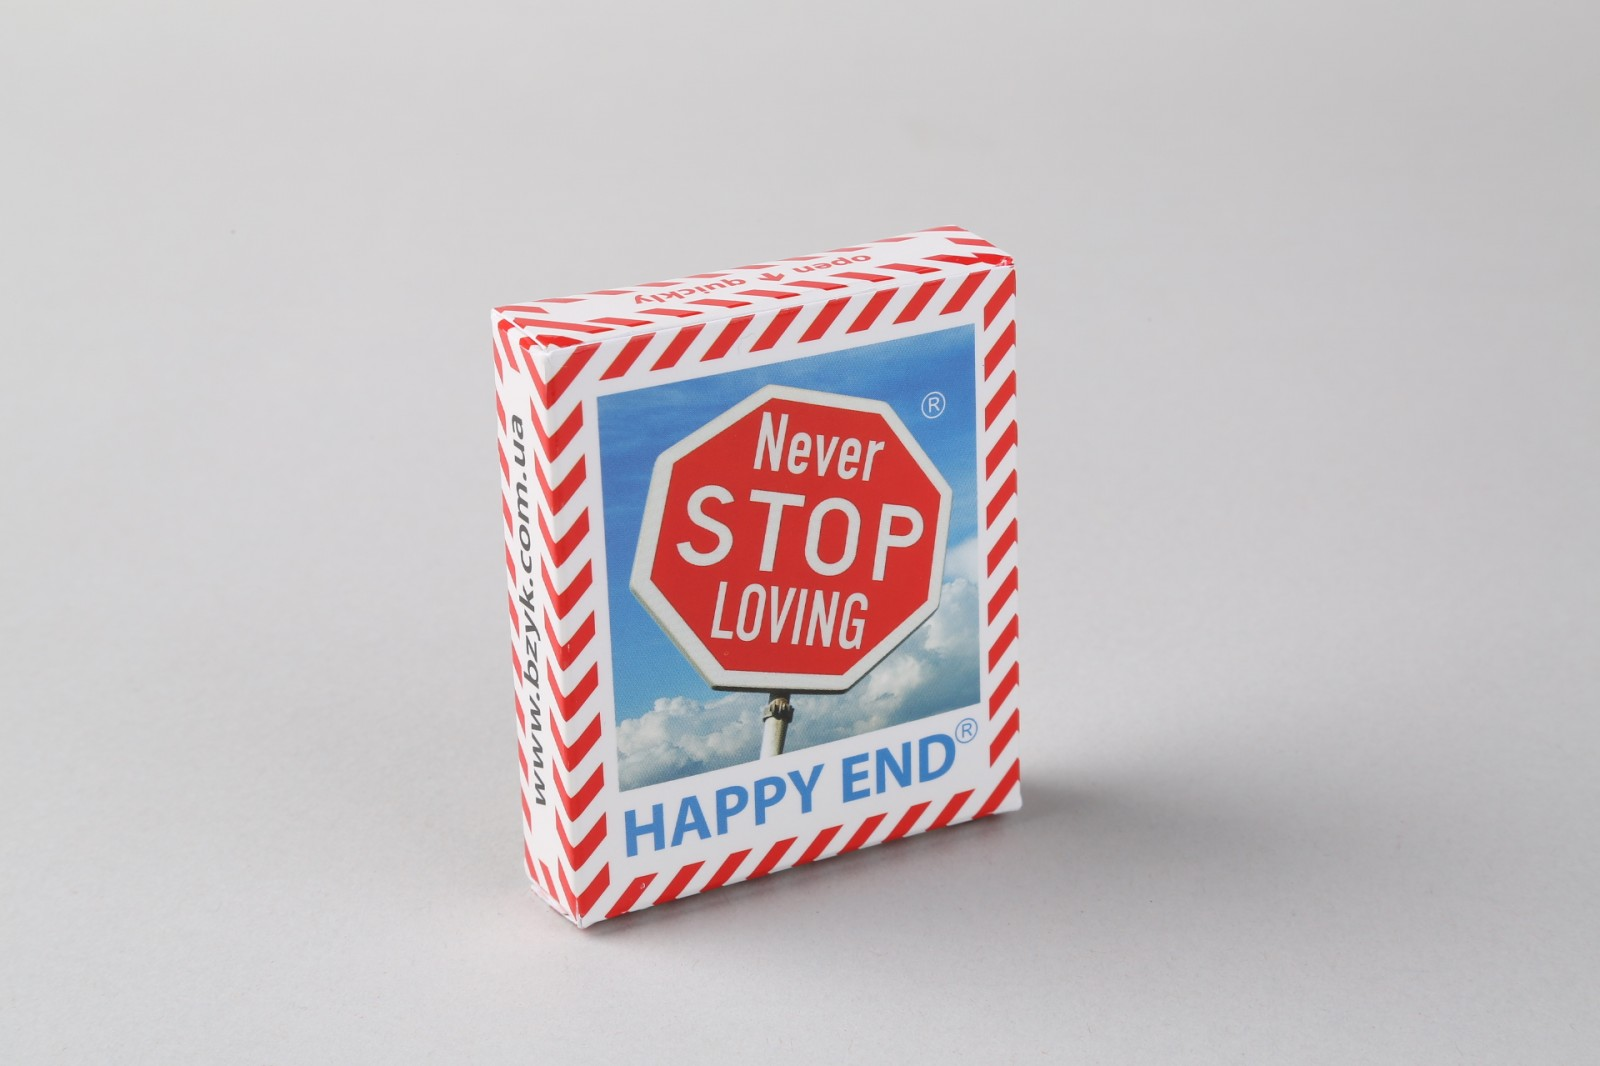 HAPPY END Condoms brand